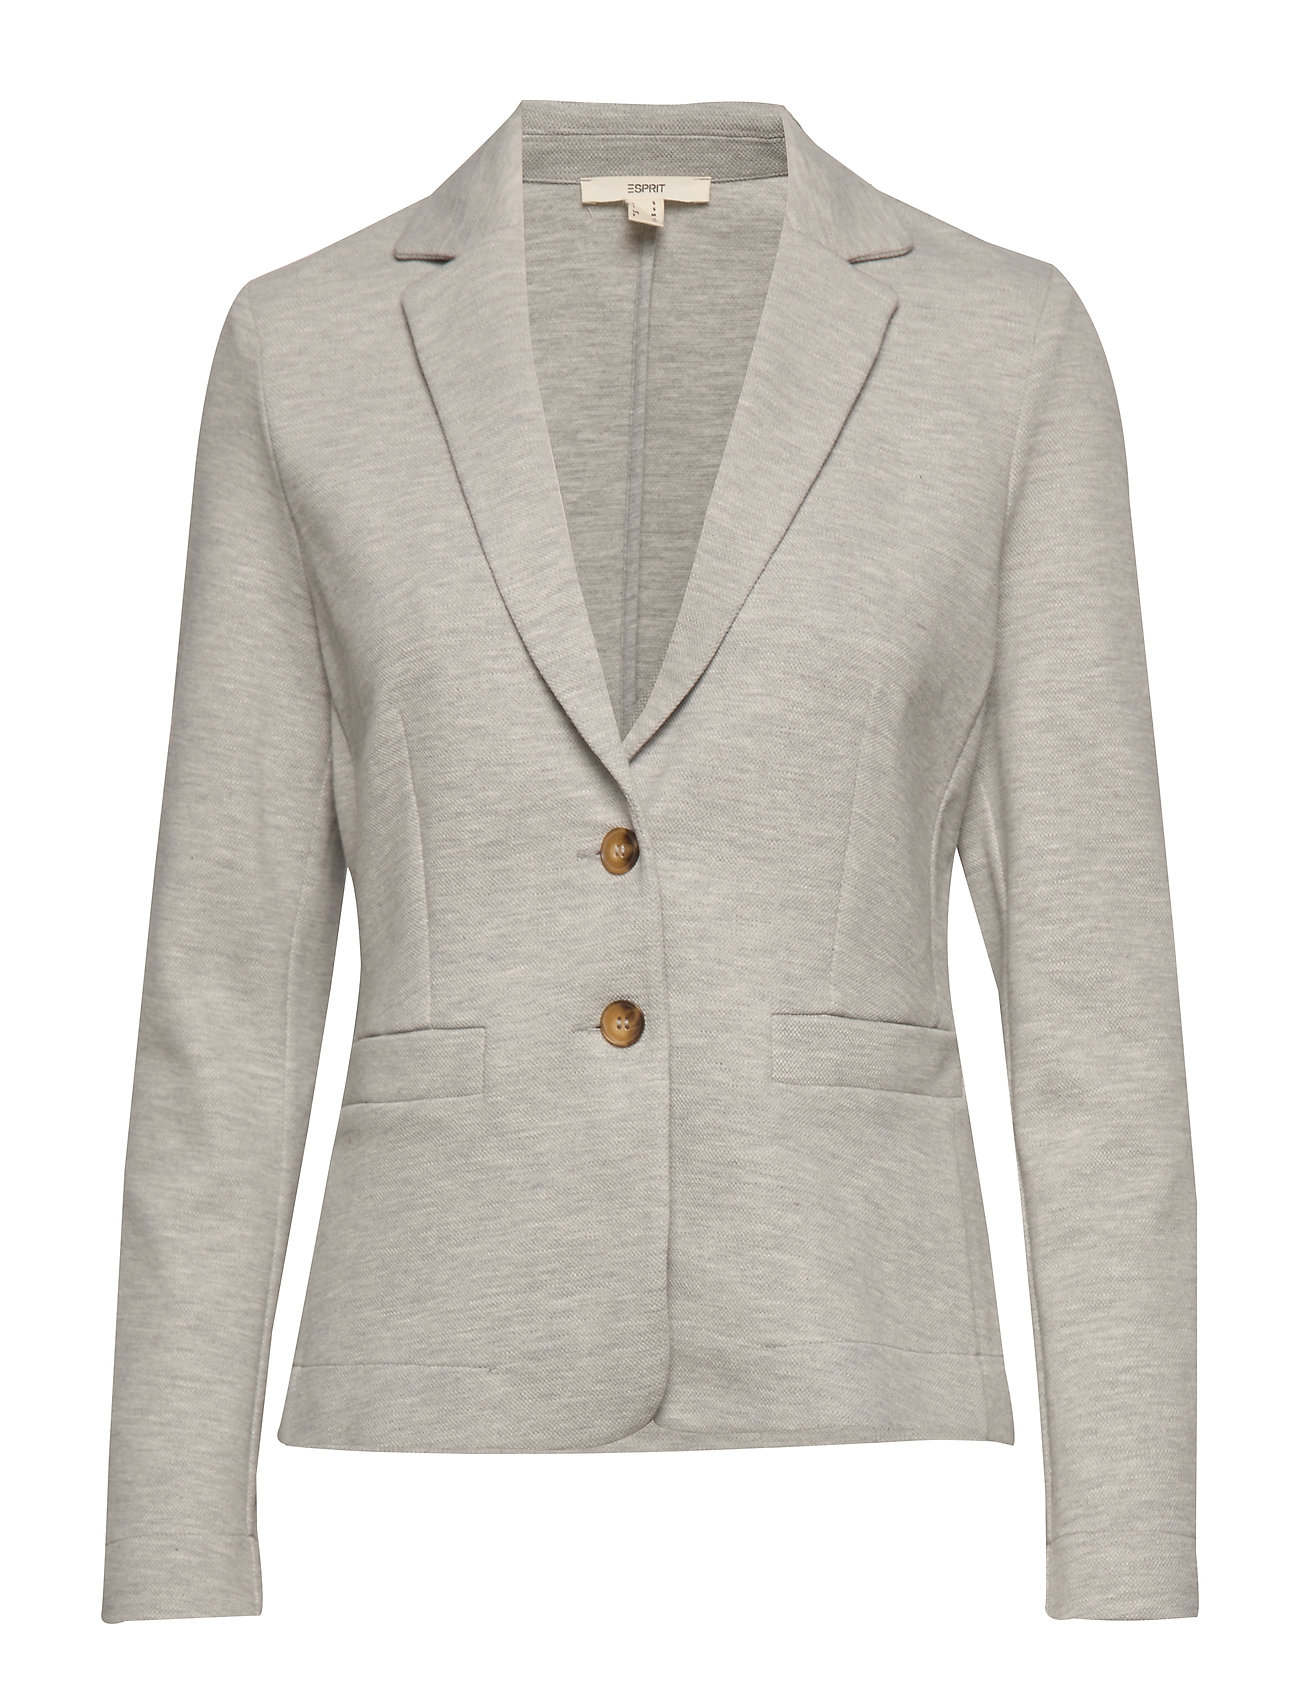 Esprit Casual Jackets indoor knitted - LIGHT GREY 5